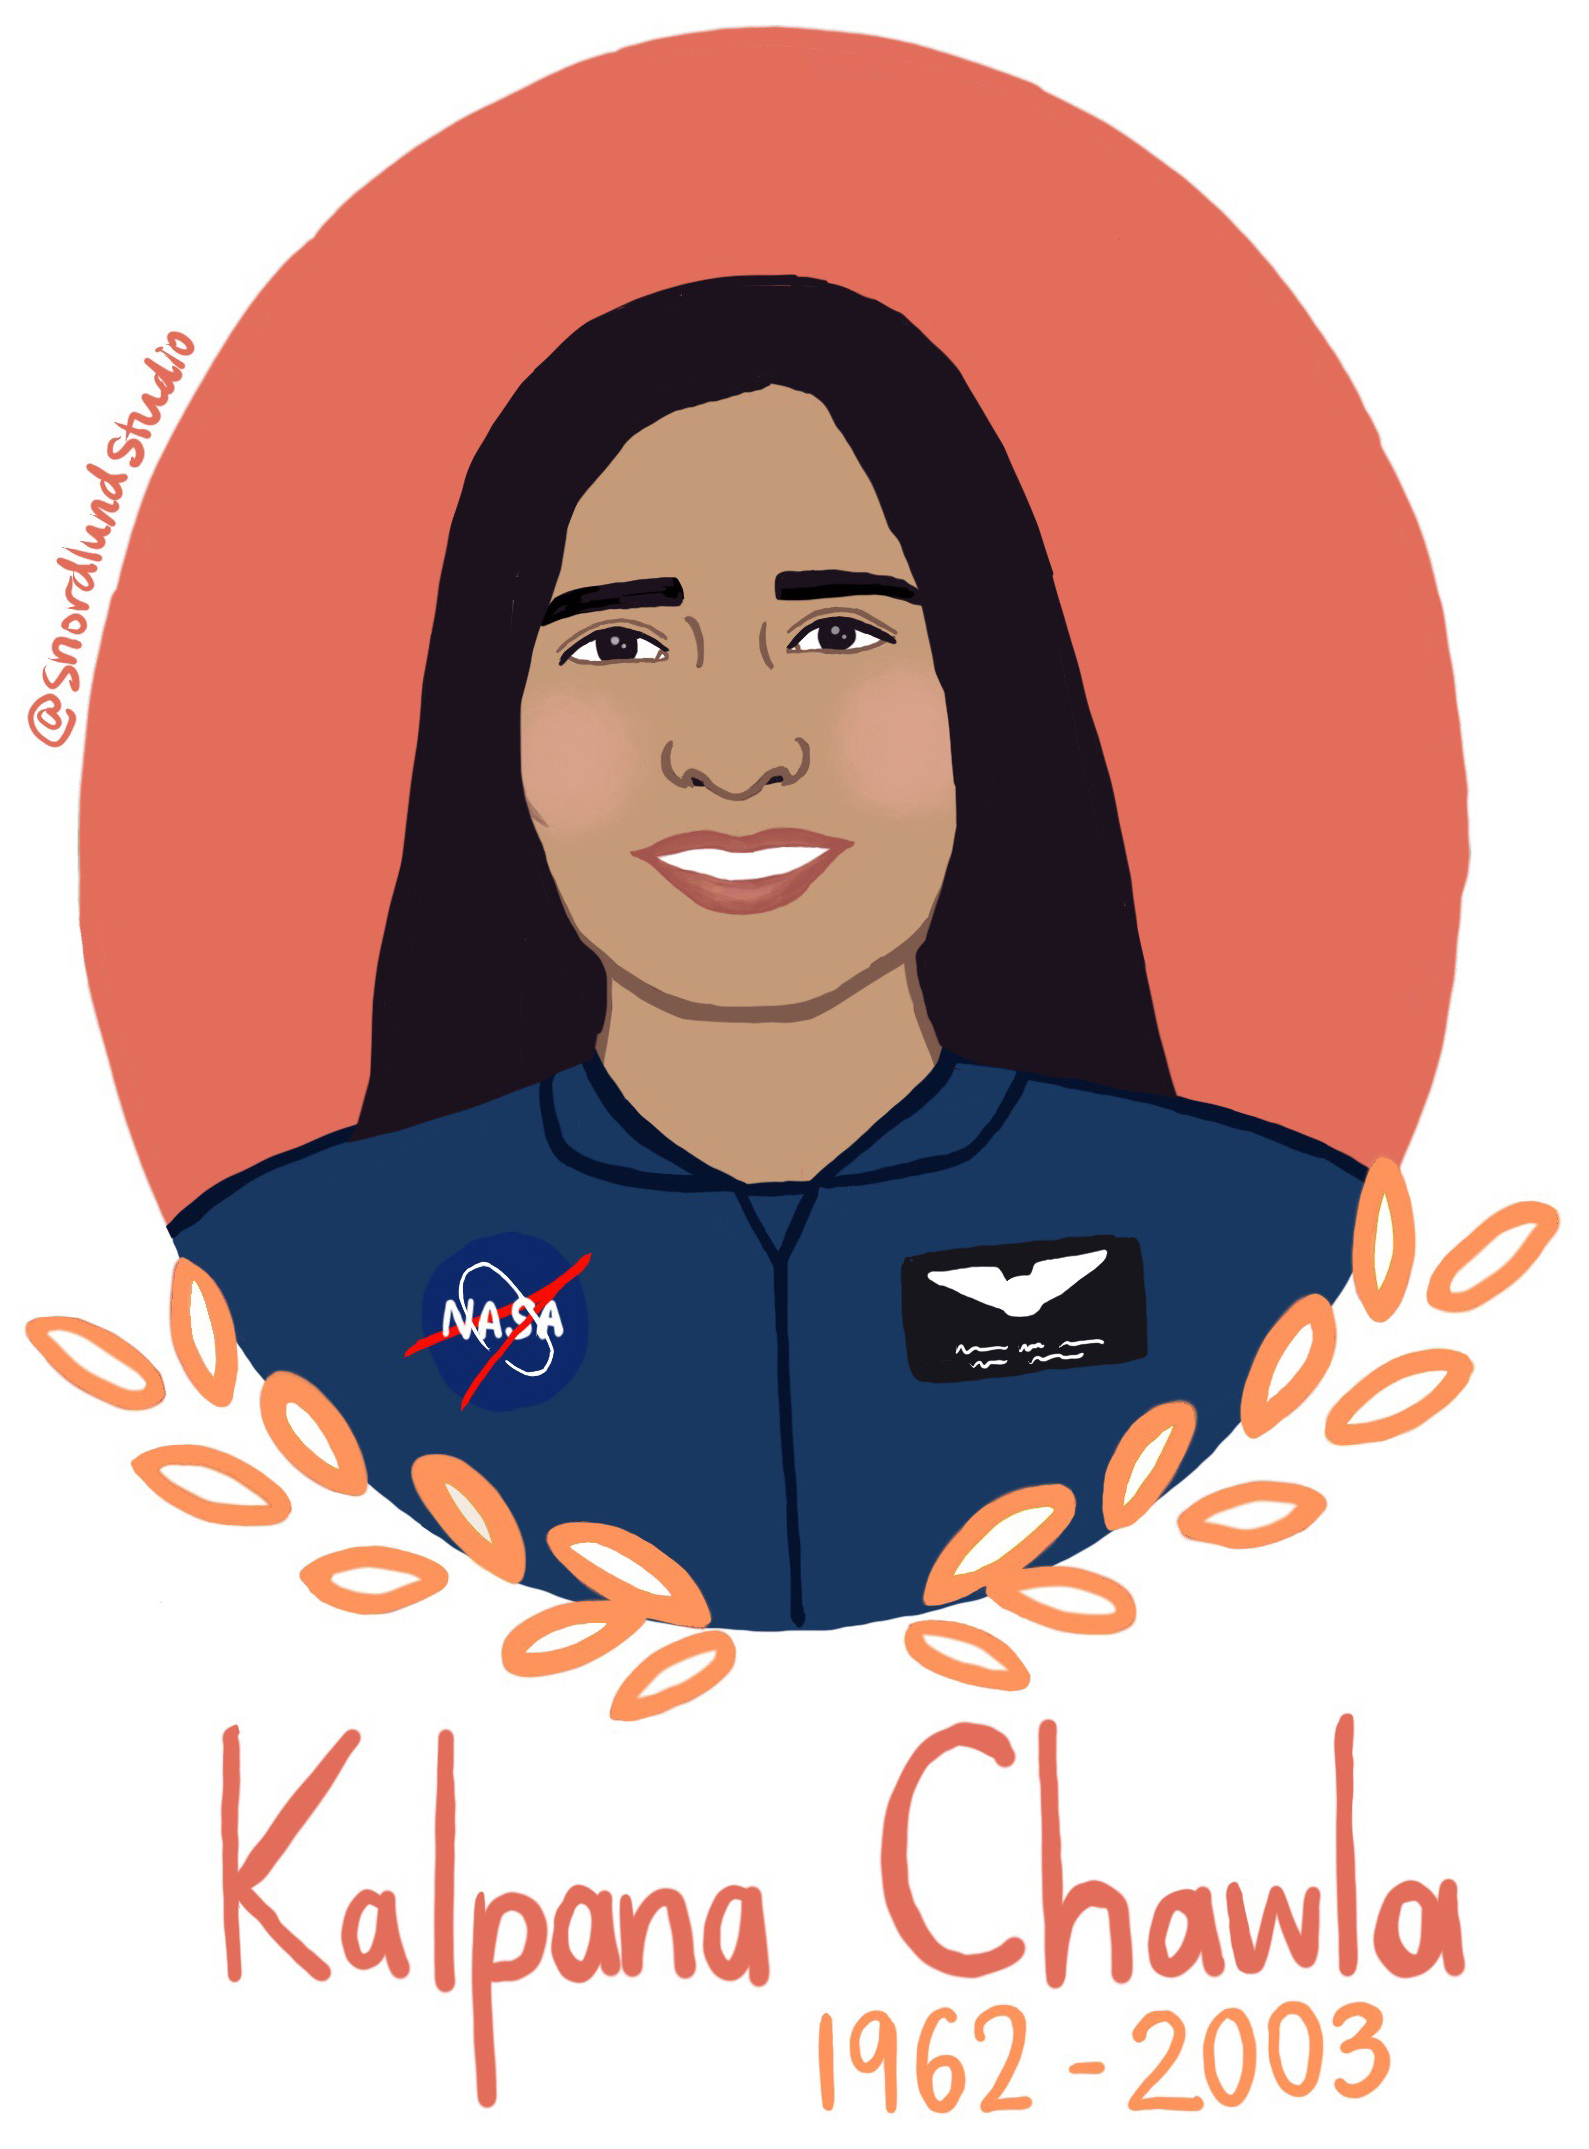 19. Kalpana Chawla - Kalpana Chawla (1962-2003) was an astronaut and aerospace engineer. She was the first woman of Indian origin to go to space, and she died in the Columbia disaster.